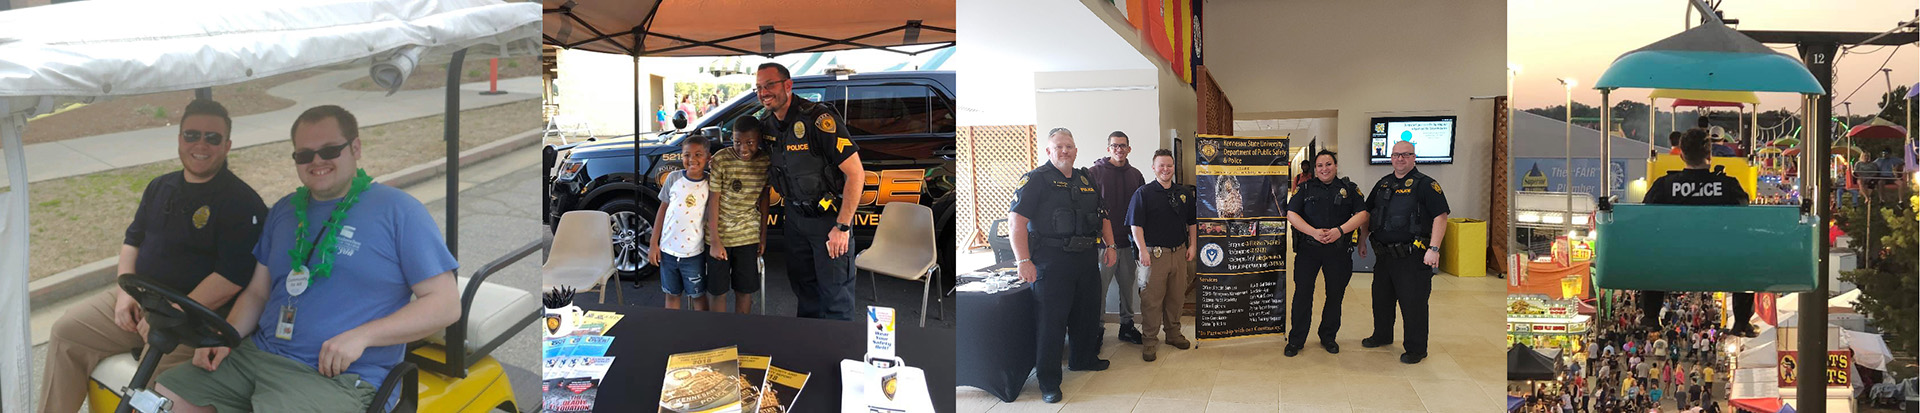 kennesaw state university police officers in the community